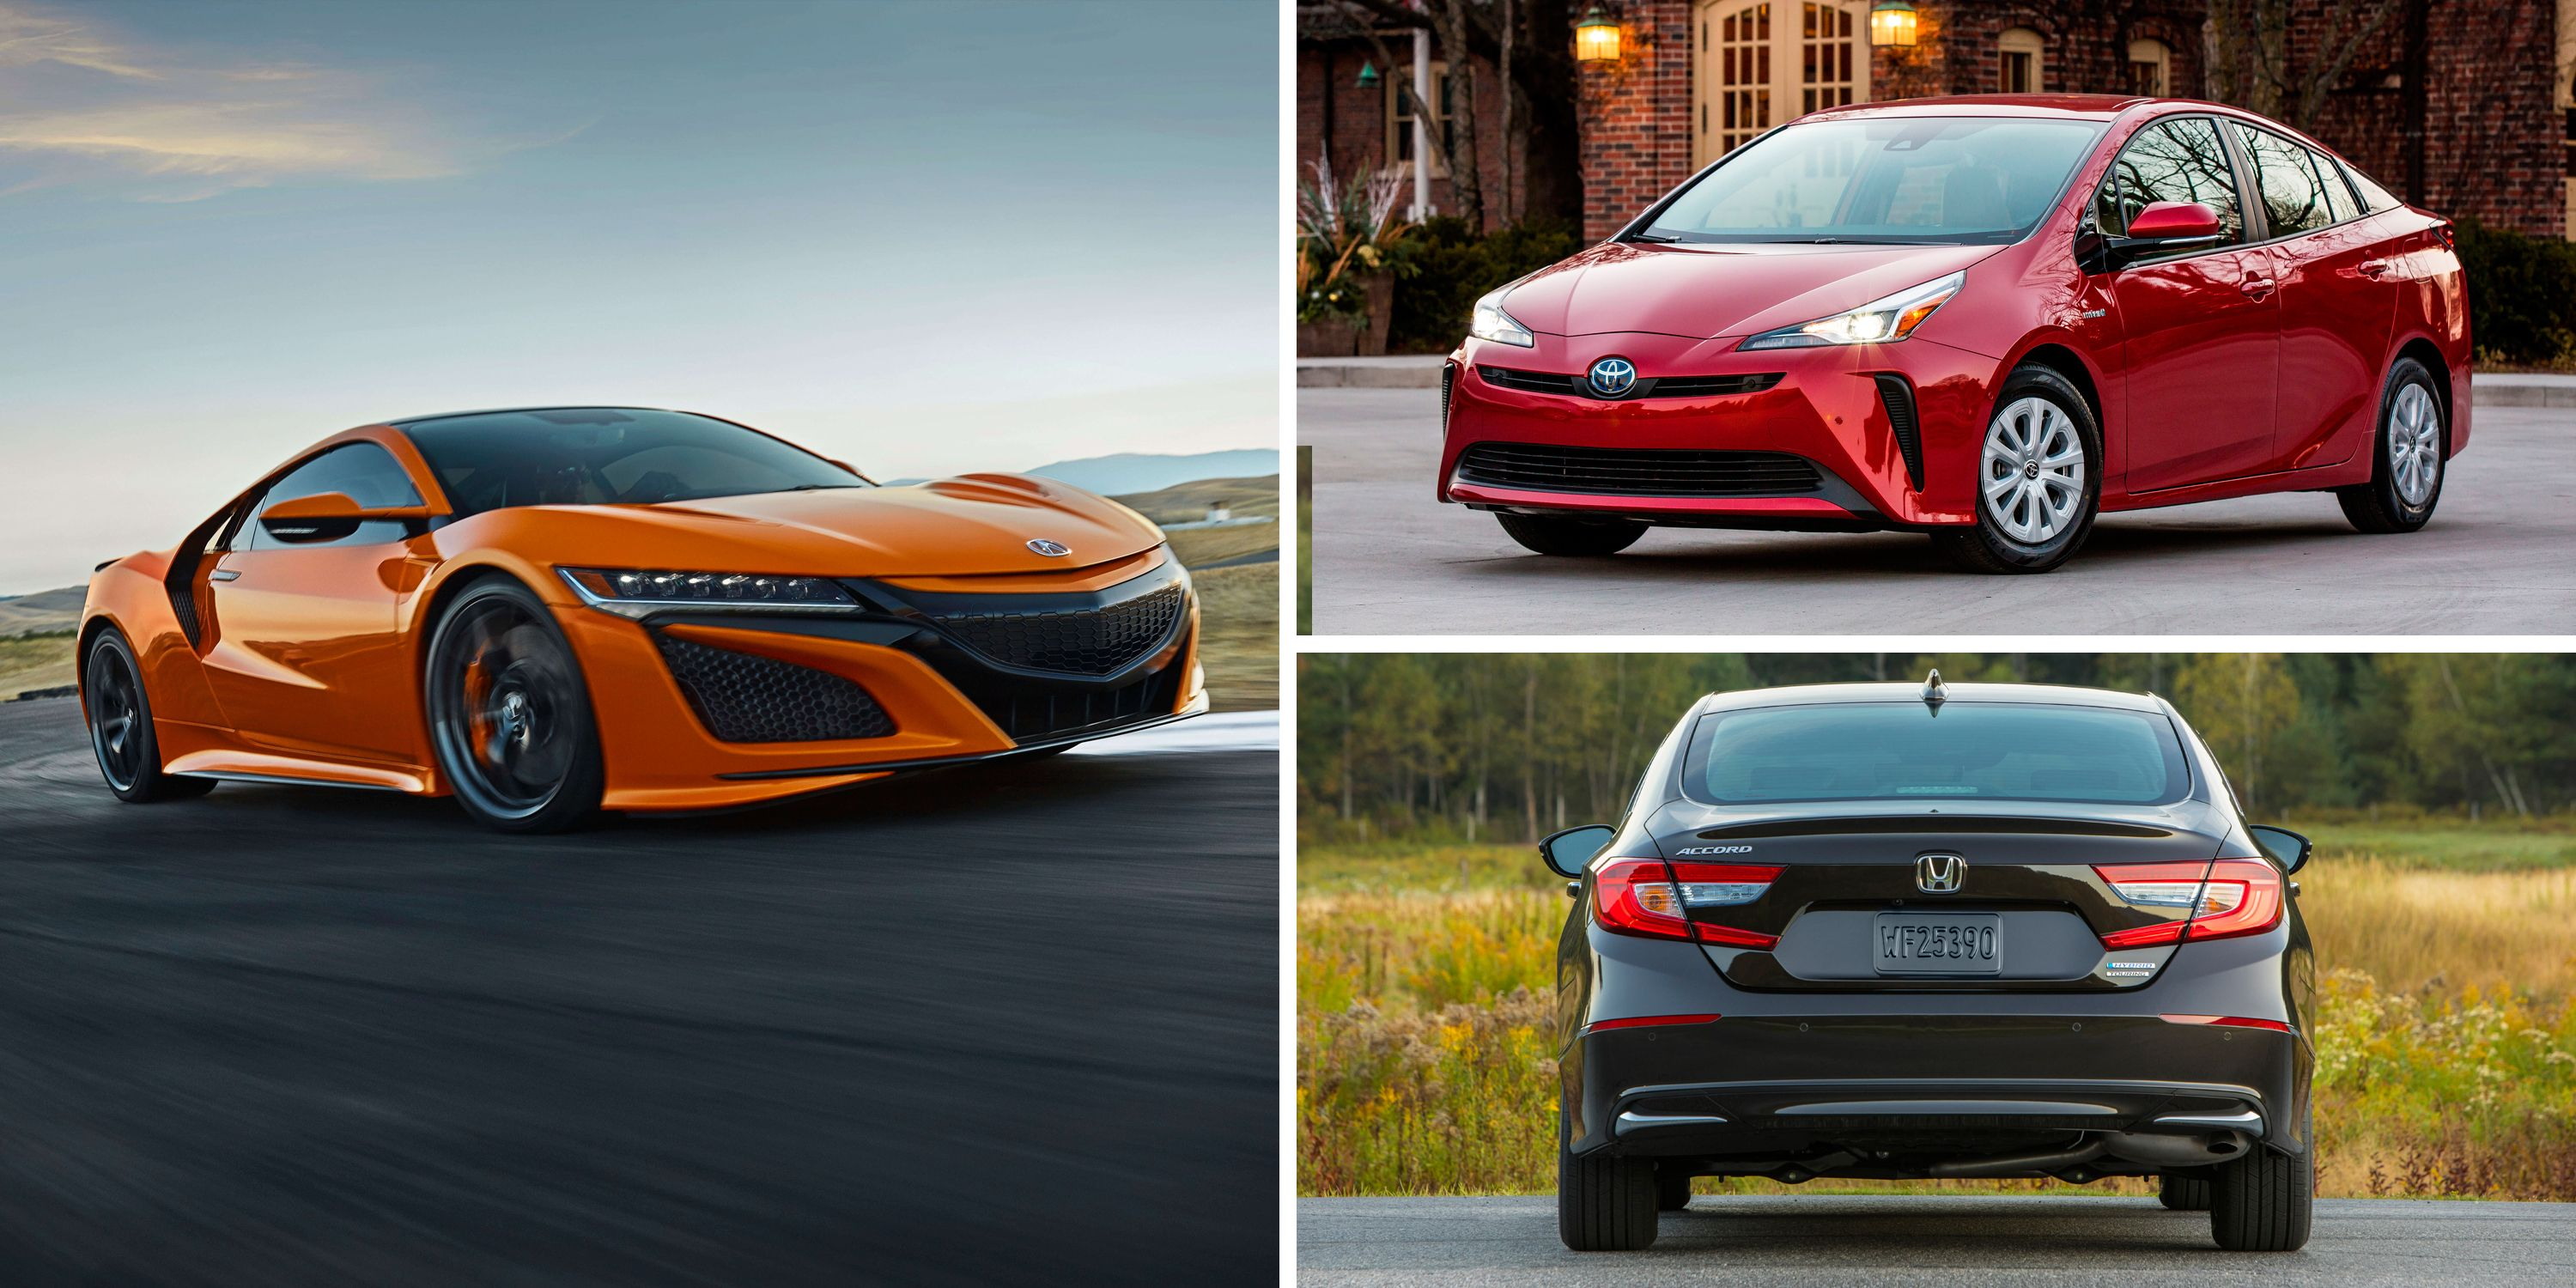 Every Hybrid Car You Can Buy in 2019